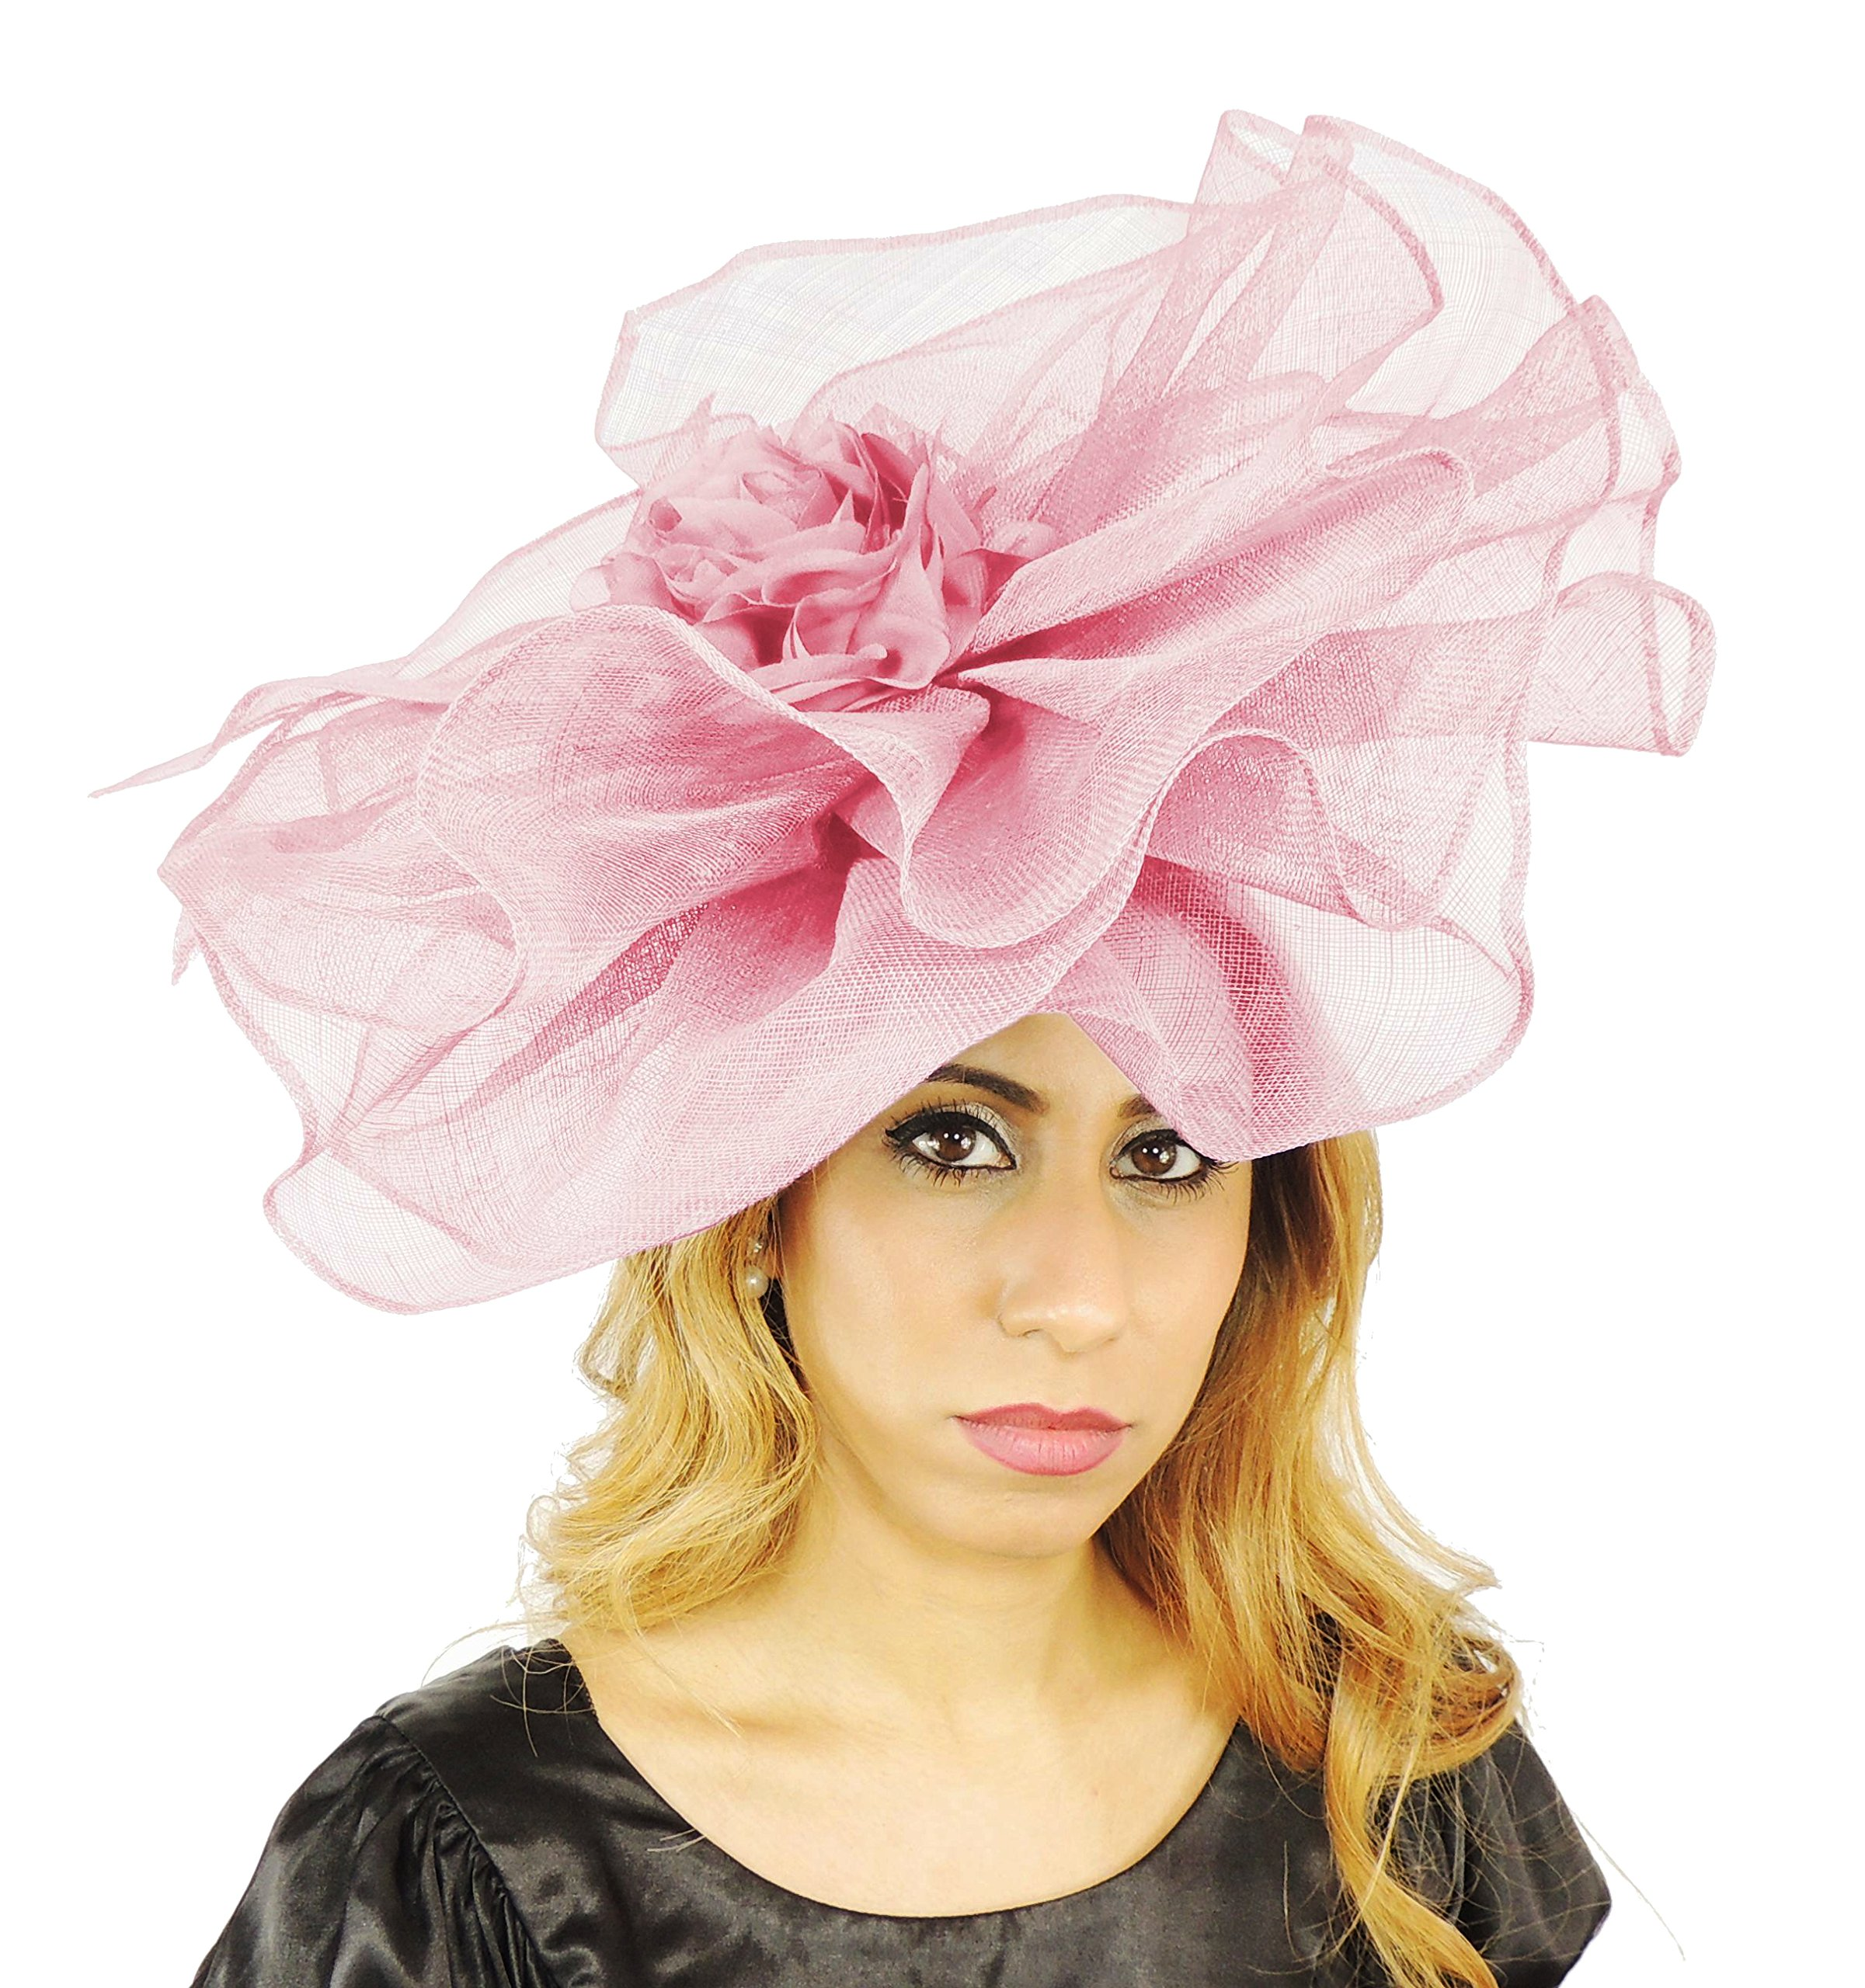 Hats By Cressida Gorgeous Amelia Candy Pink Large Sinamay With Flower Ascot/Derby Fascinator Hat - With Headband